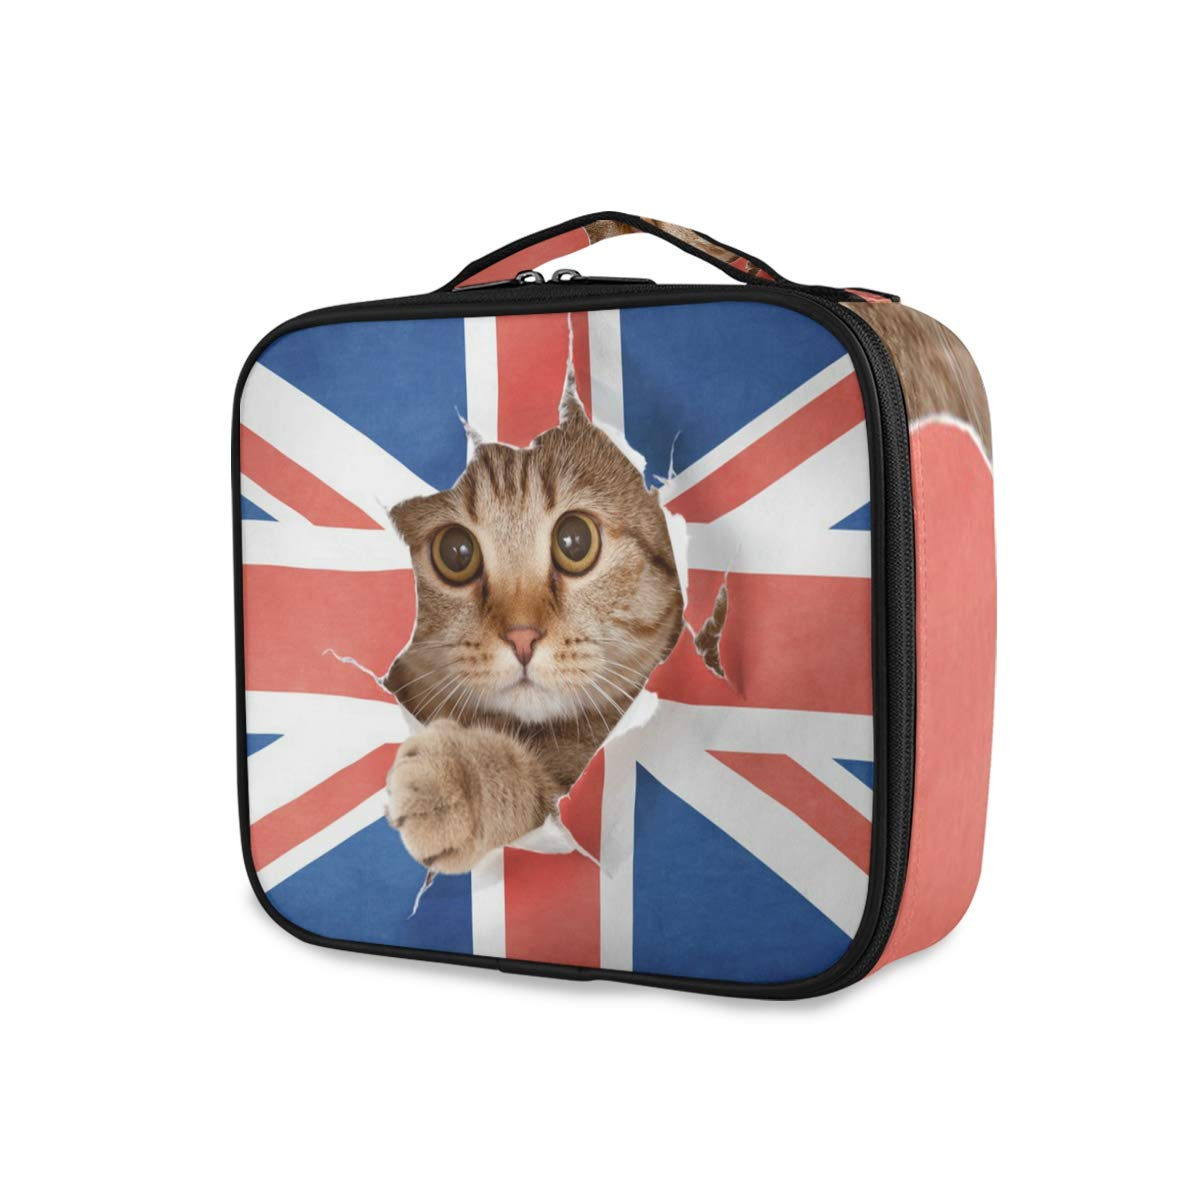 Cat Kitten British UK Flag Travel Makeup Train Case Portable Organizer Cosmetic Bag for Women